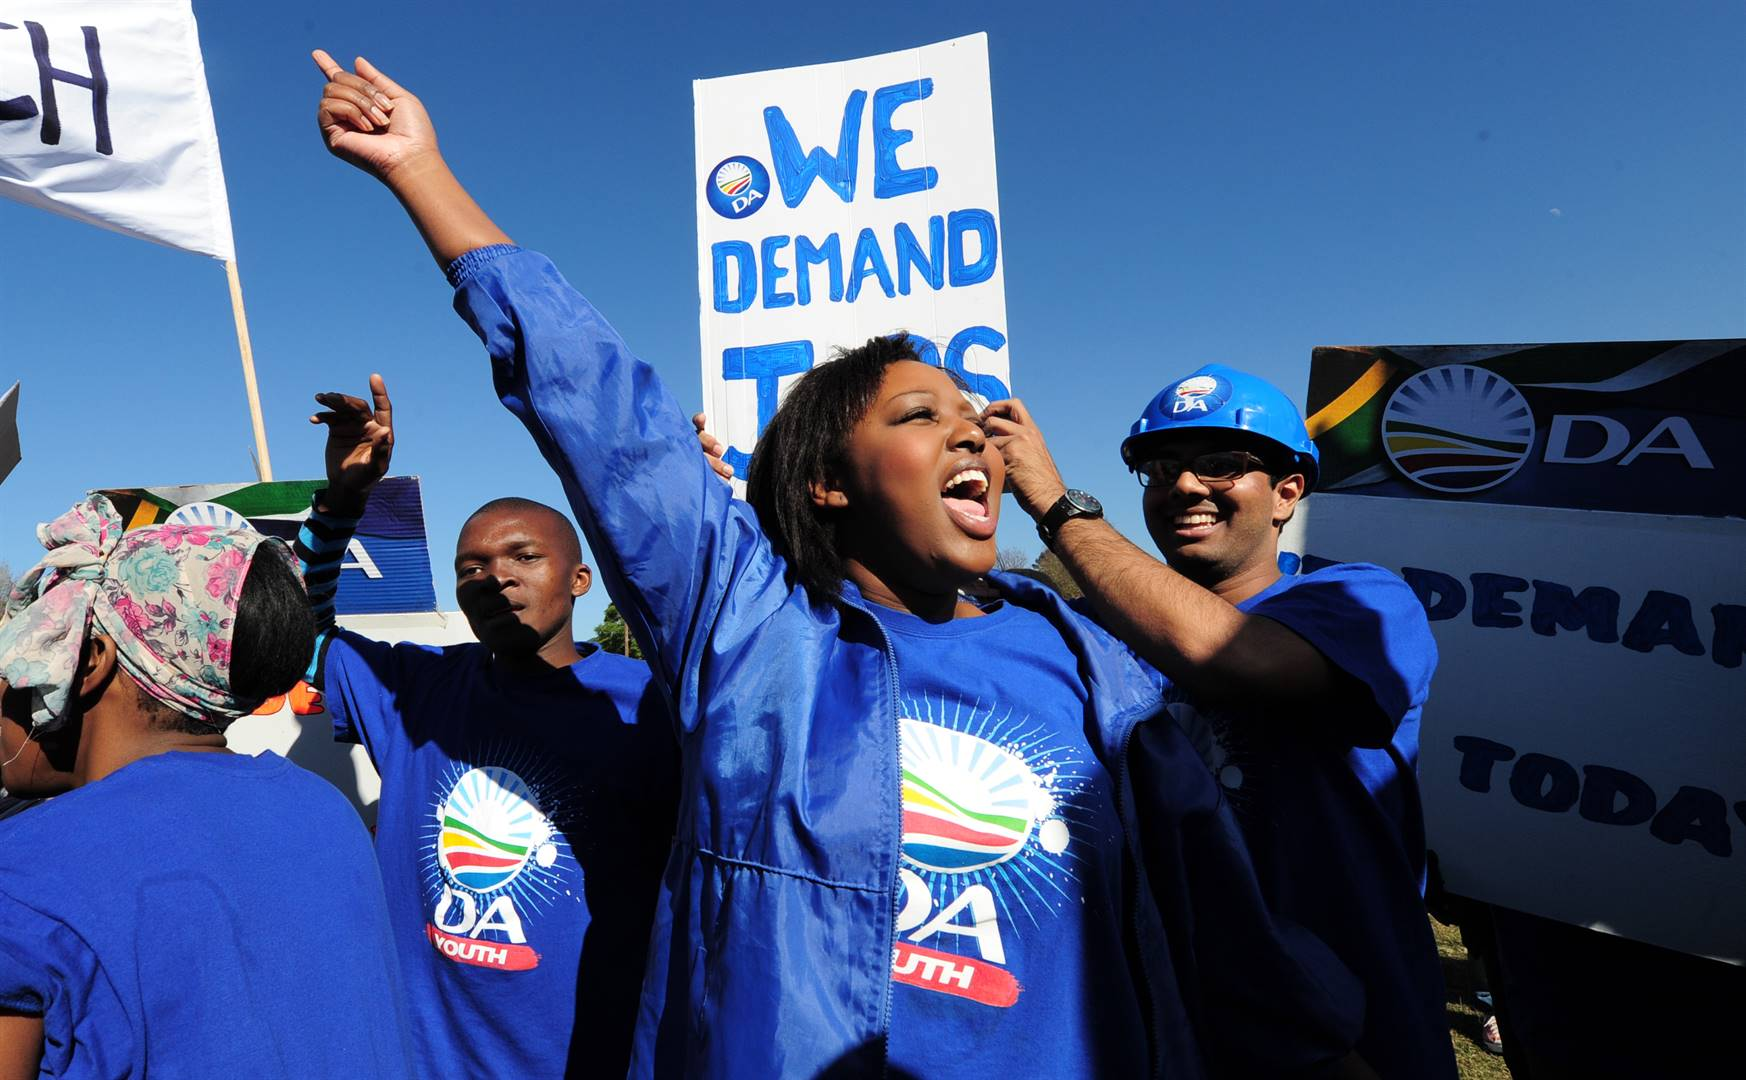 Mbali Ntuli leads a march by the DA Youth through. Photo: Ian Carbutt/File